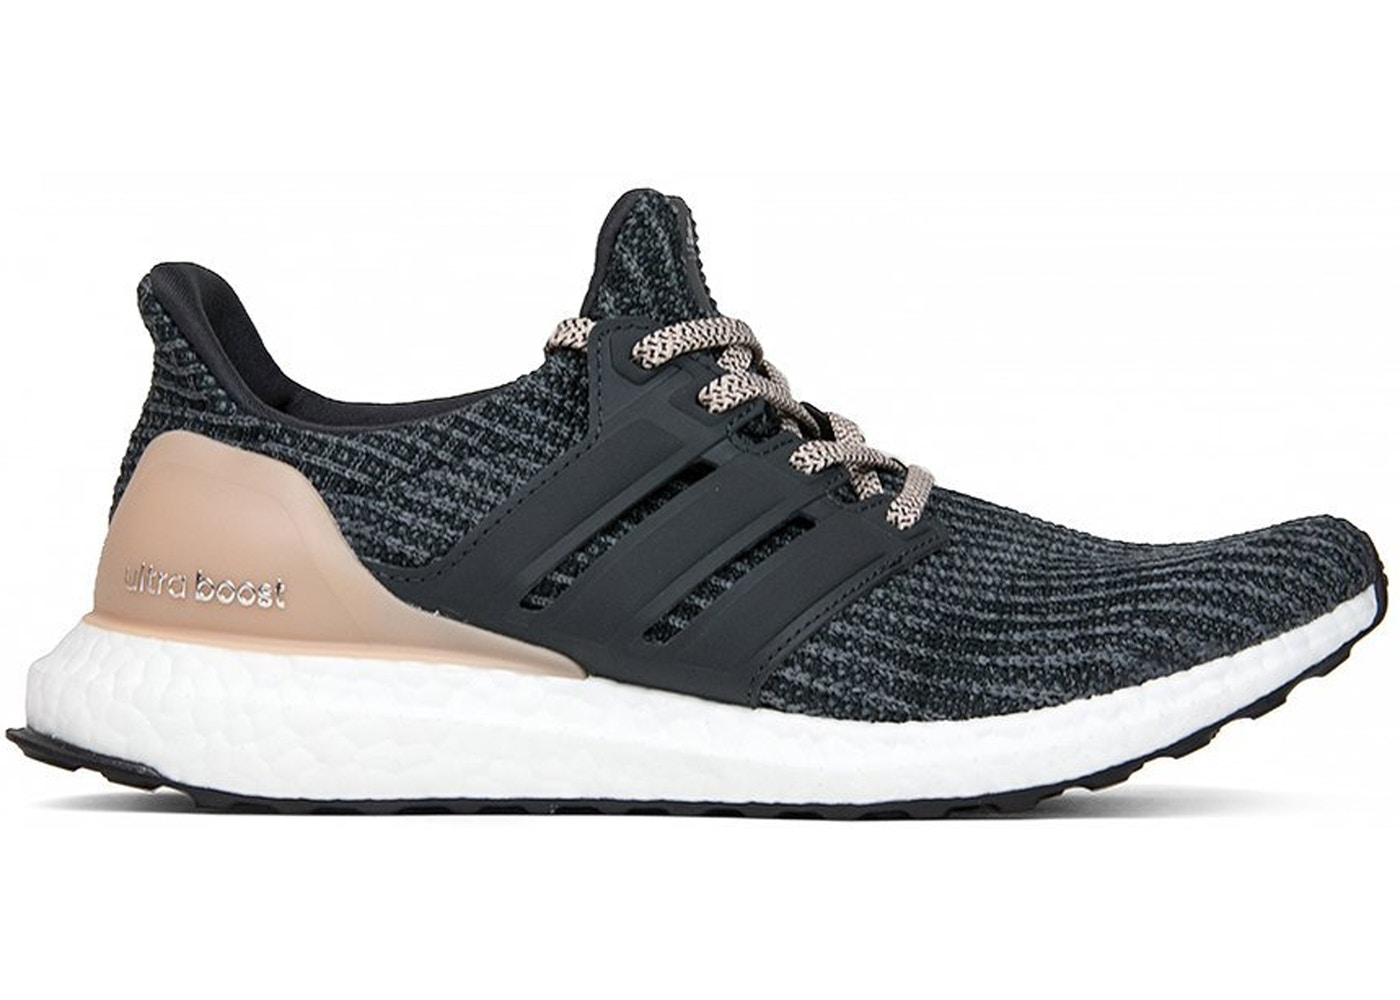 Adidas Ultra Boost 4.0 Ash Pearl Black Grey BB6174 Beige Tan Khaki